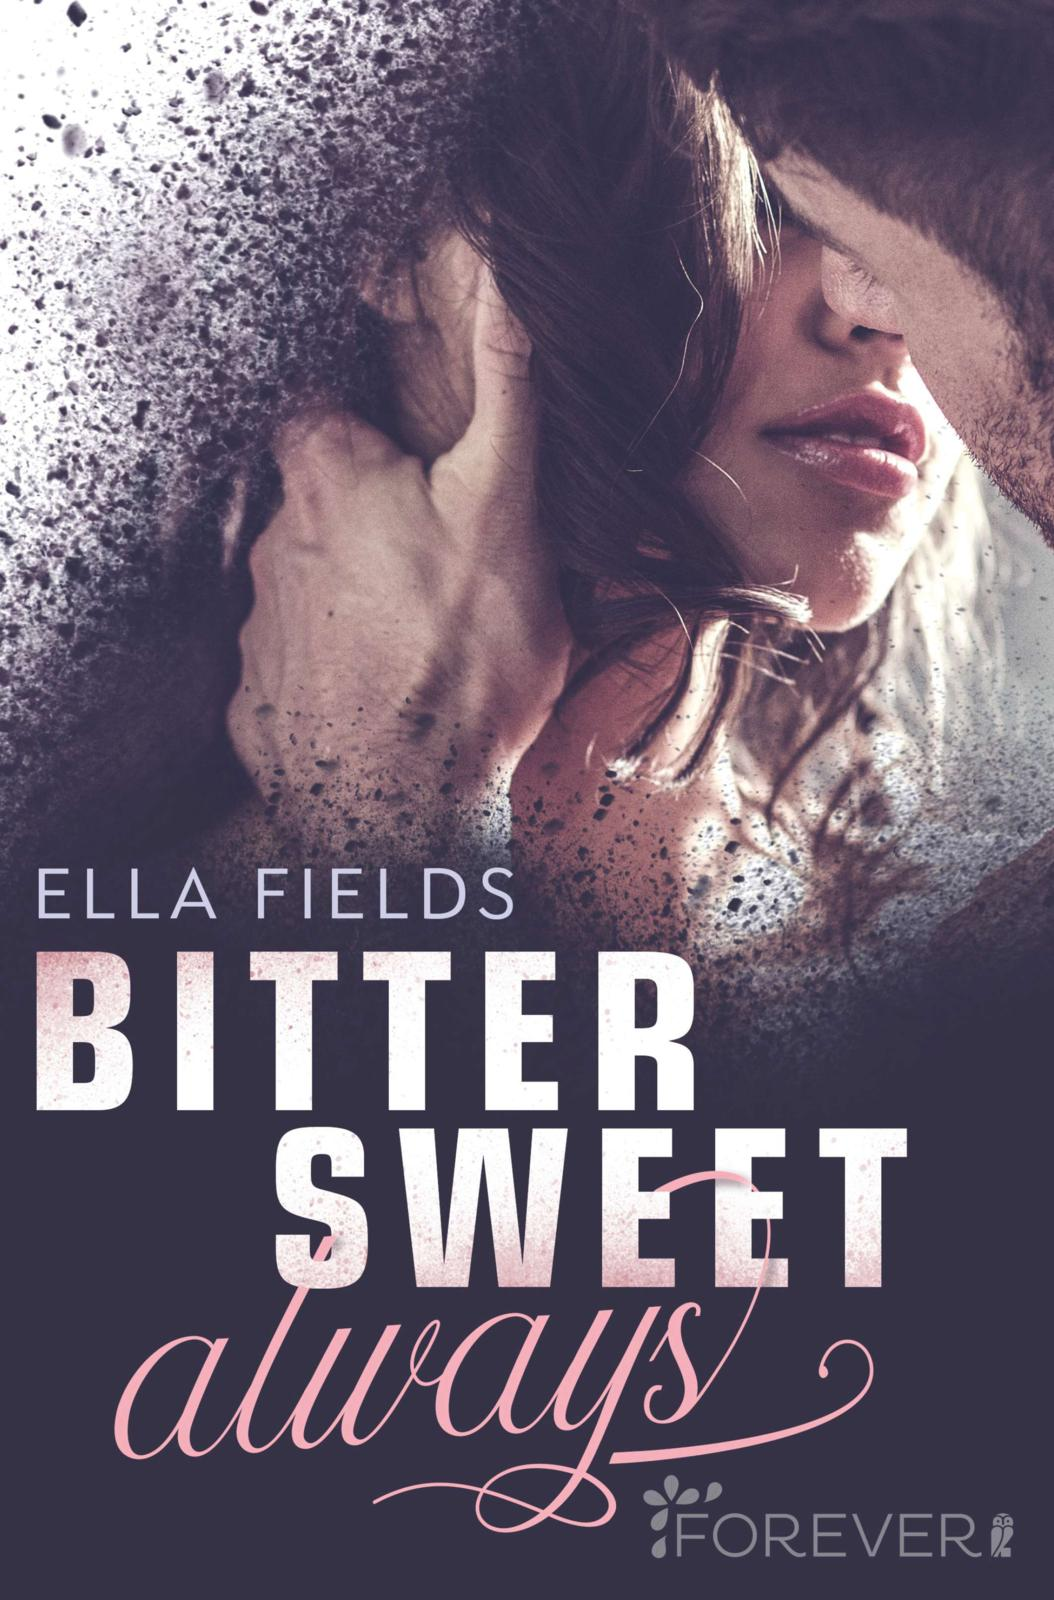 Cover: Bittersweet Always (Ella Fields)